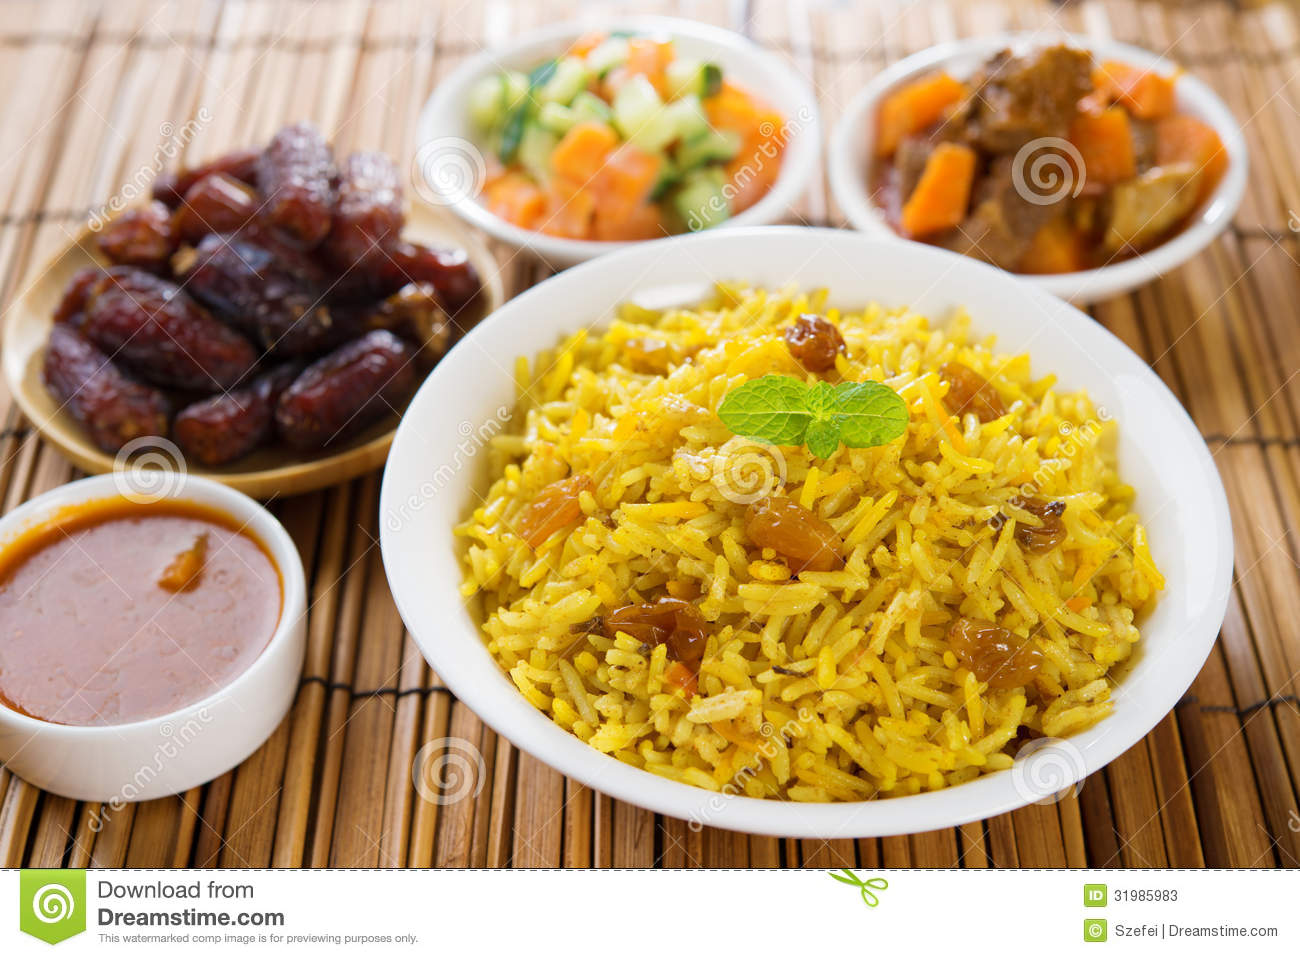 Arab rice stock photos image 31985983 for Arabic cuisine dishes